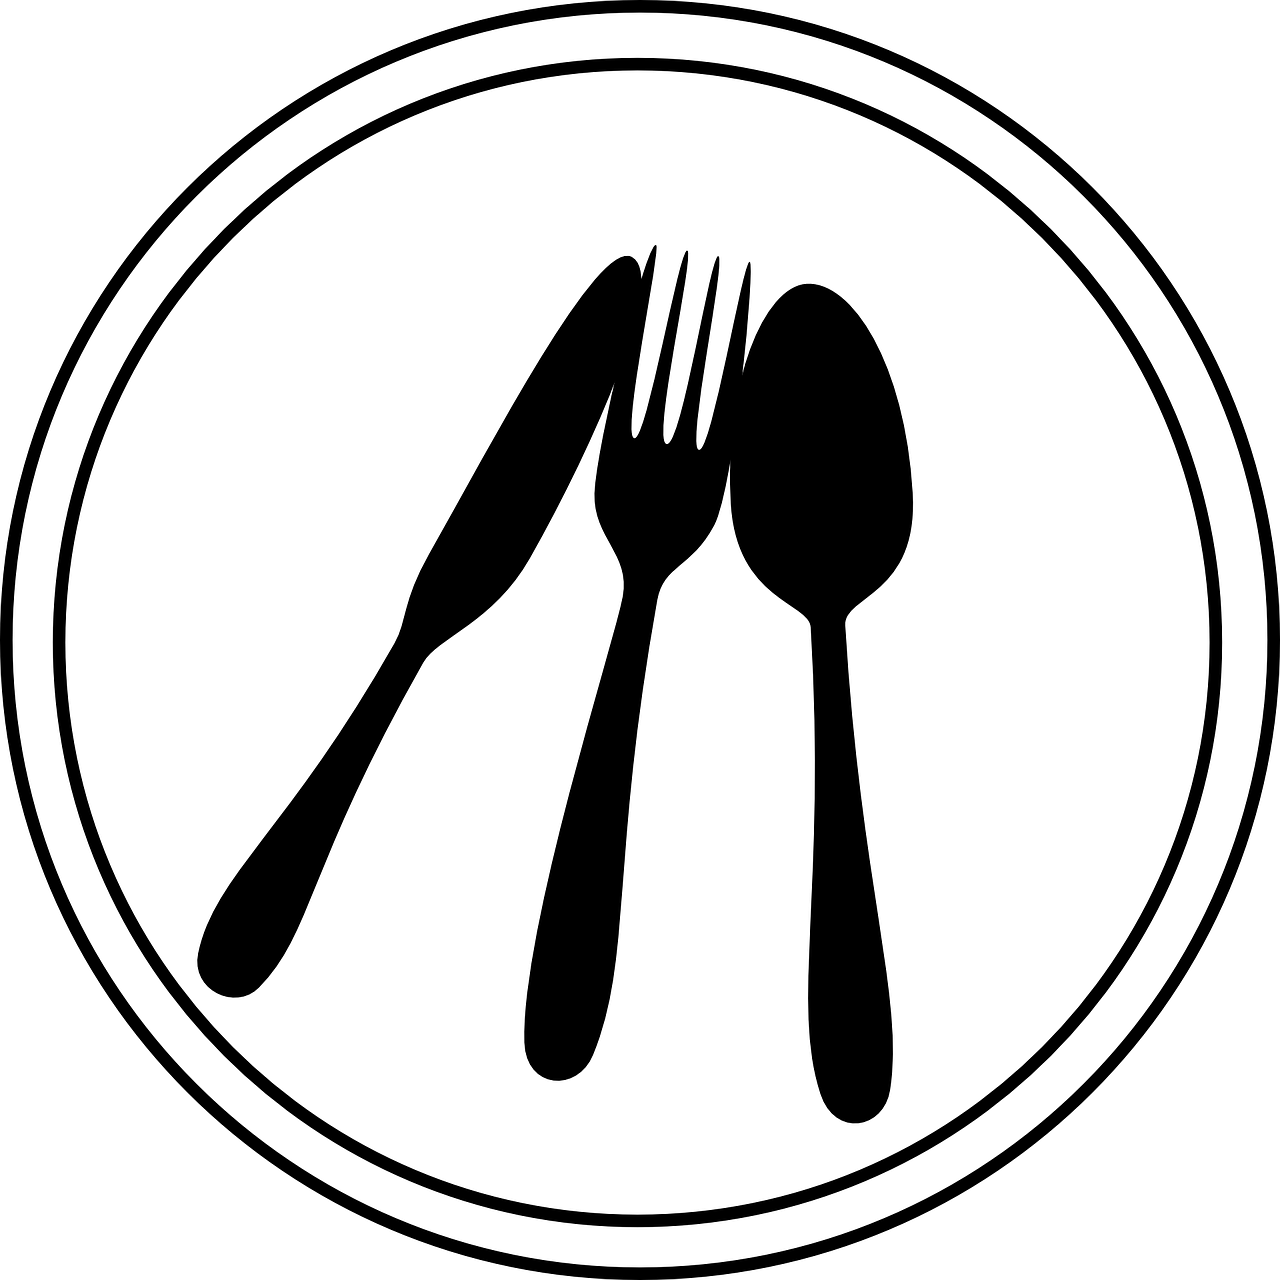 Place Setting Silverware Tableware  - Clker-Free-Vector-Images / Pixabay